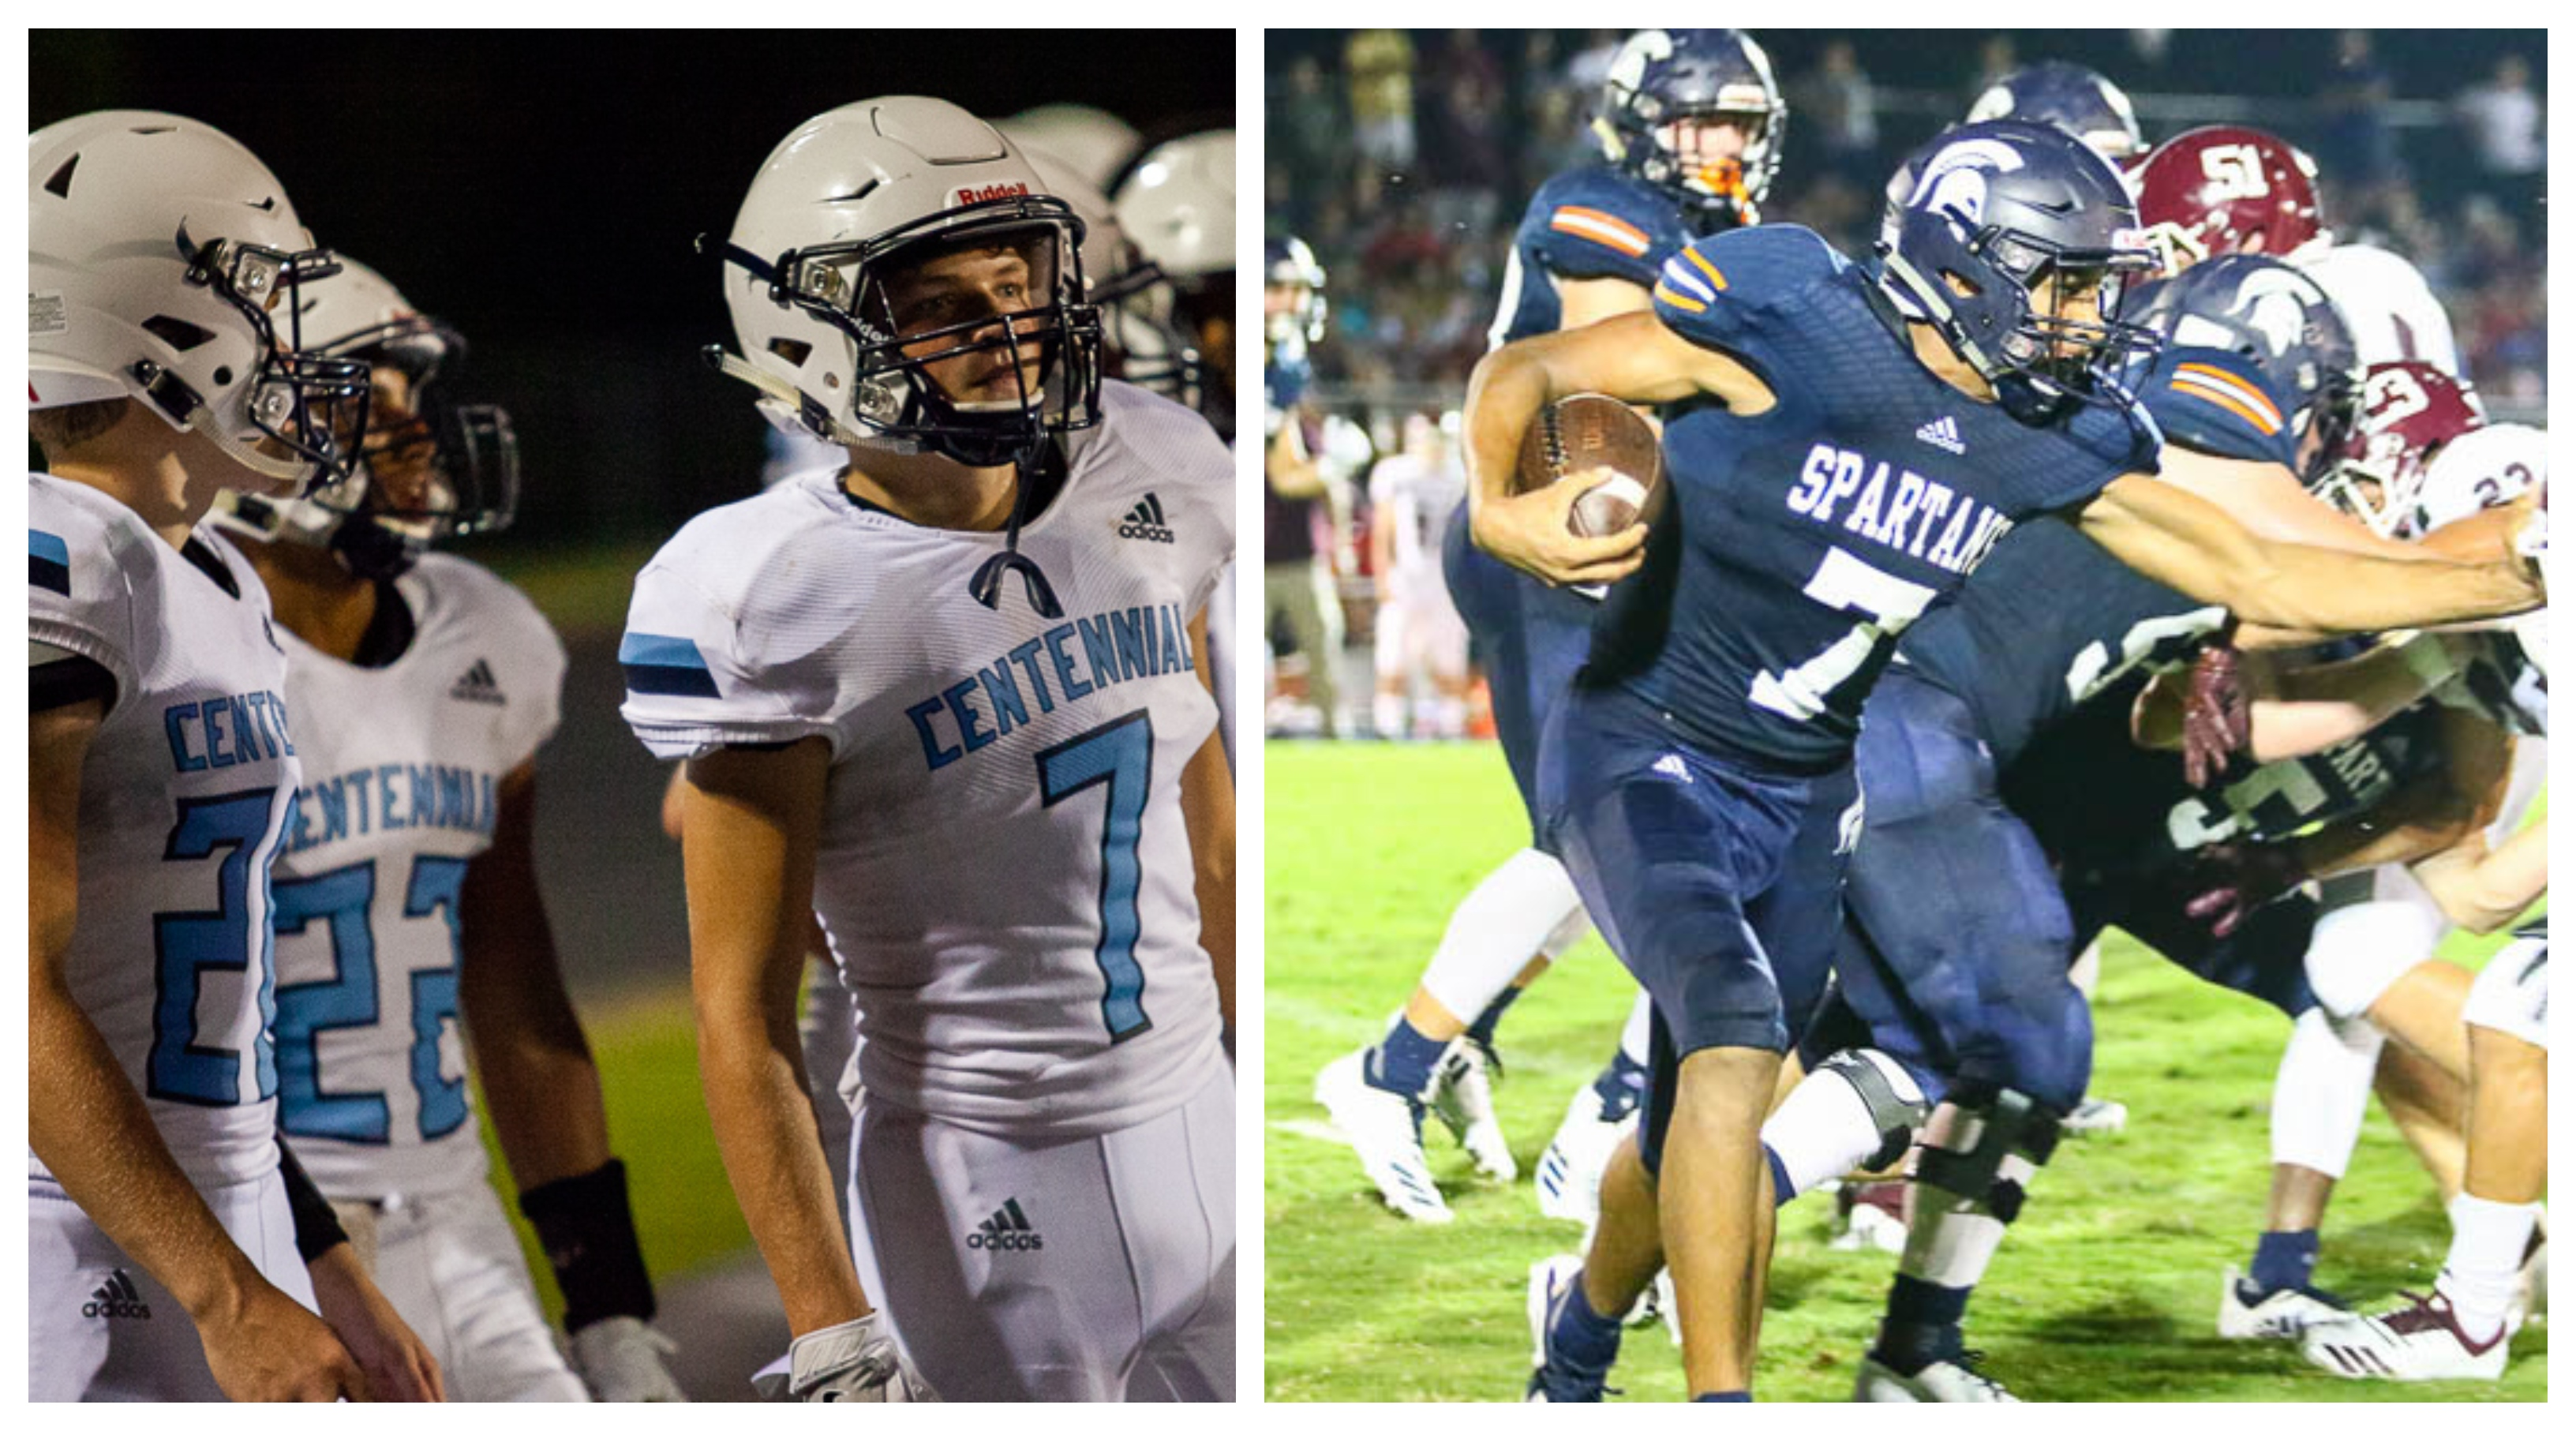 FOOTBALL PREVIEW: Centennial, Summit face non-conference tests